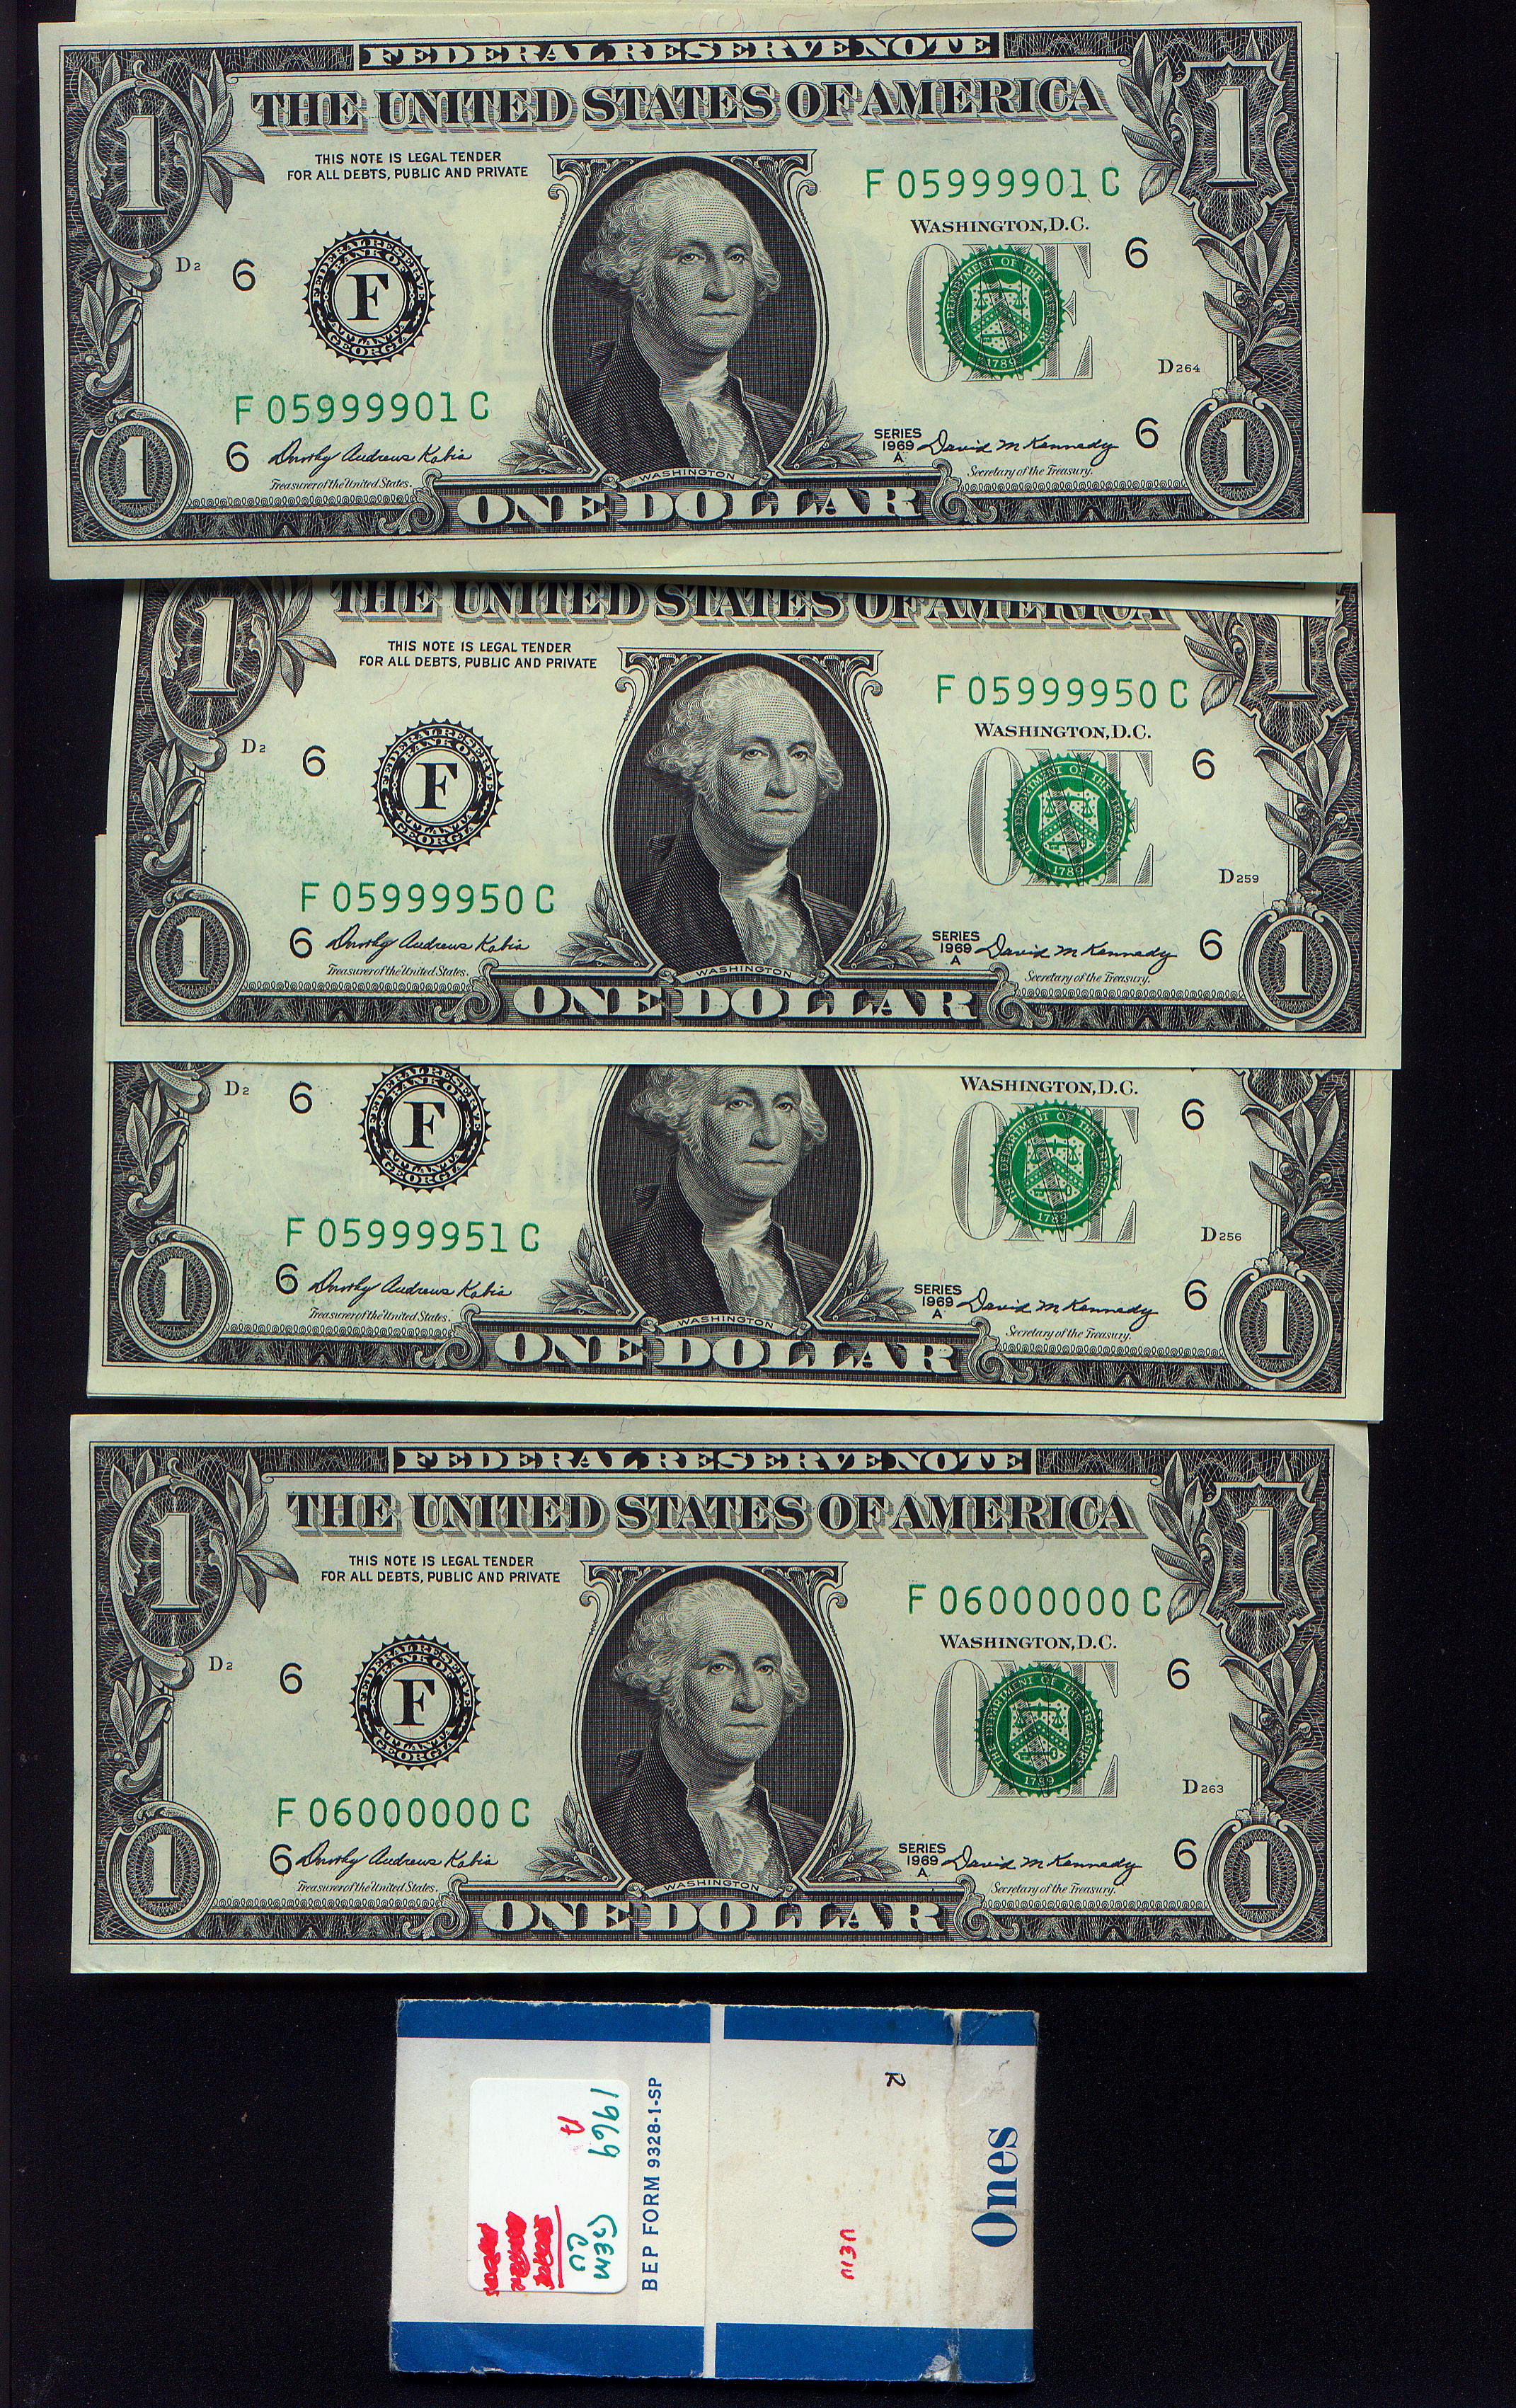 1969a pack to 06000000 $1s.jpg